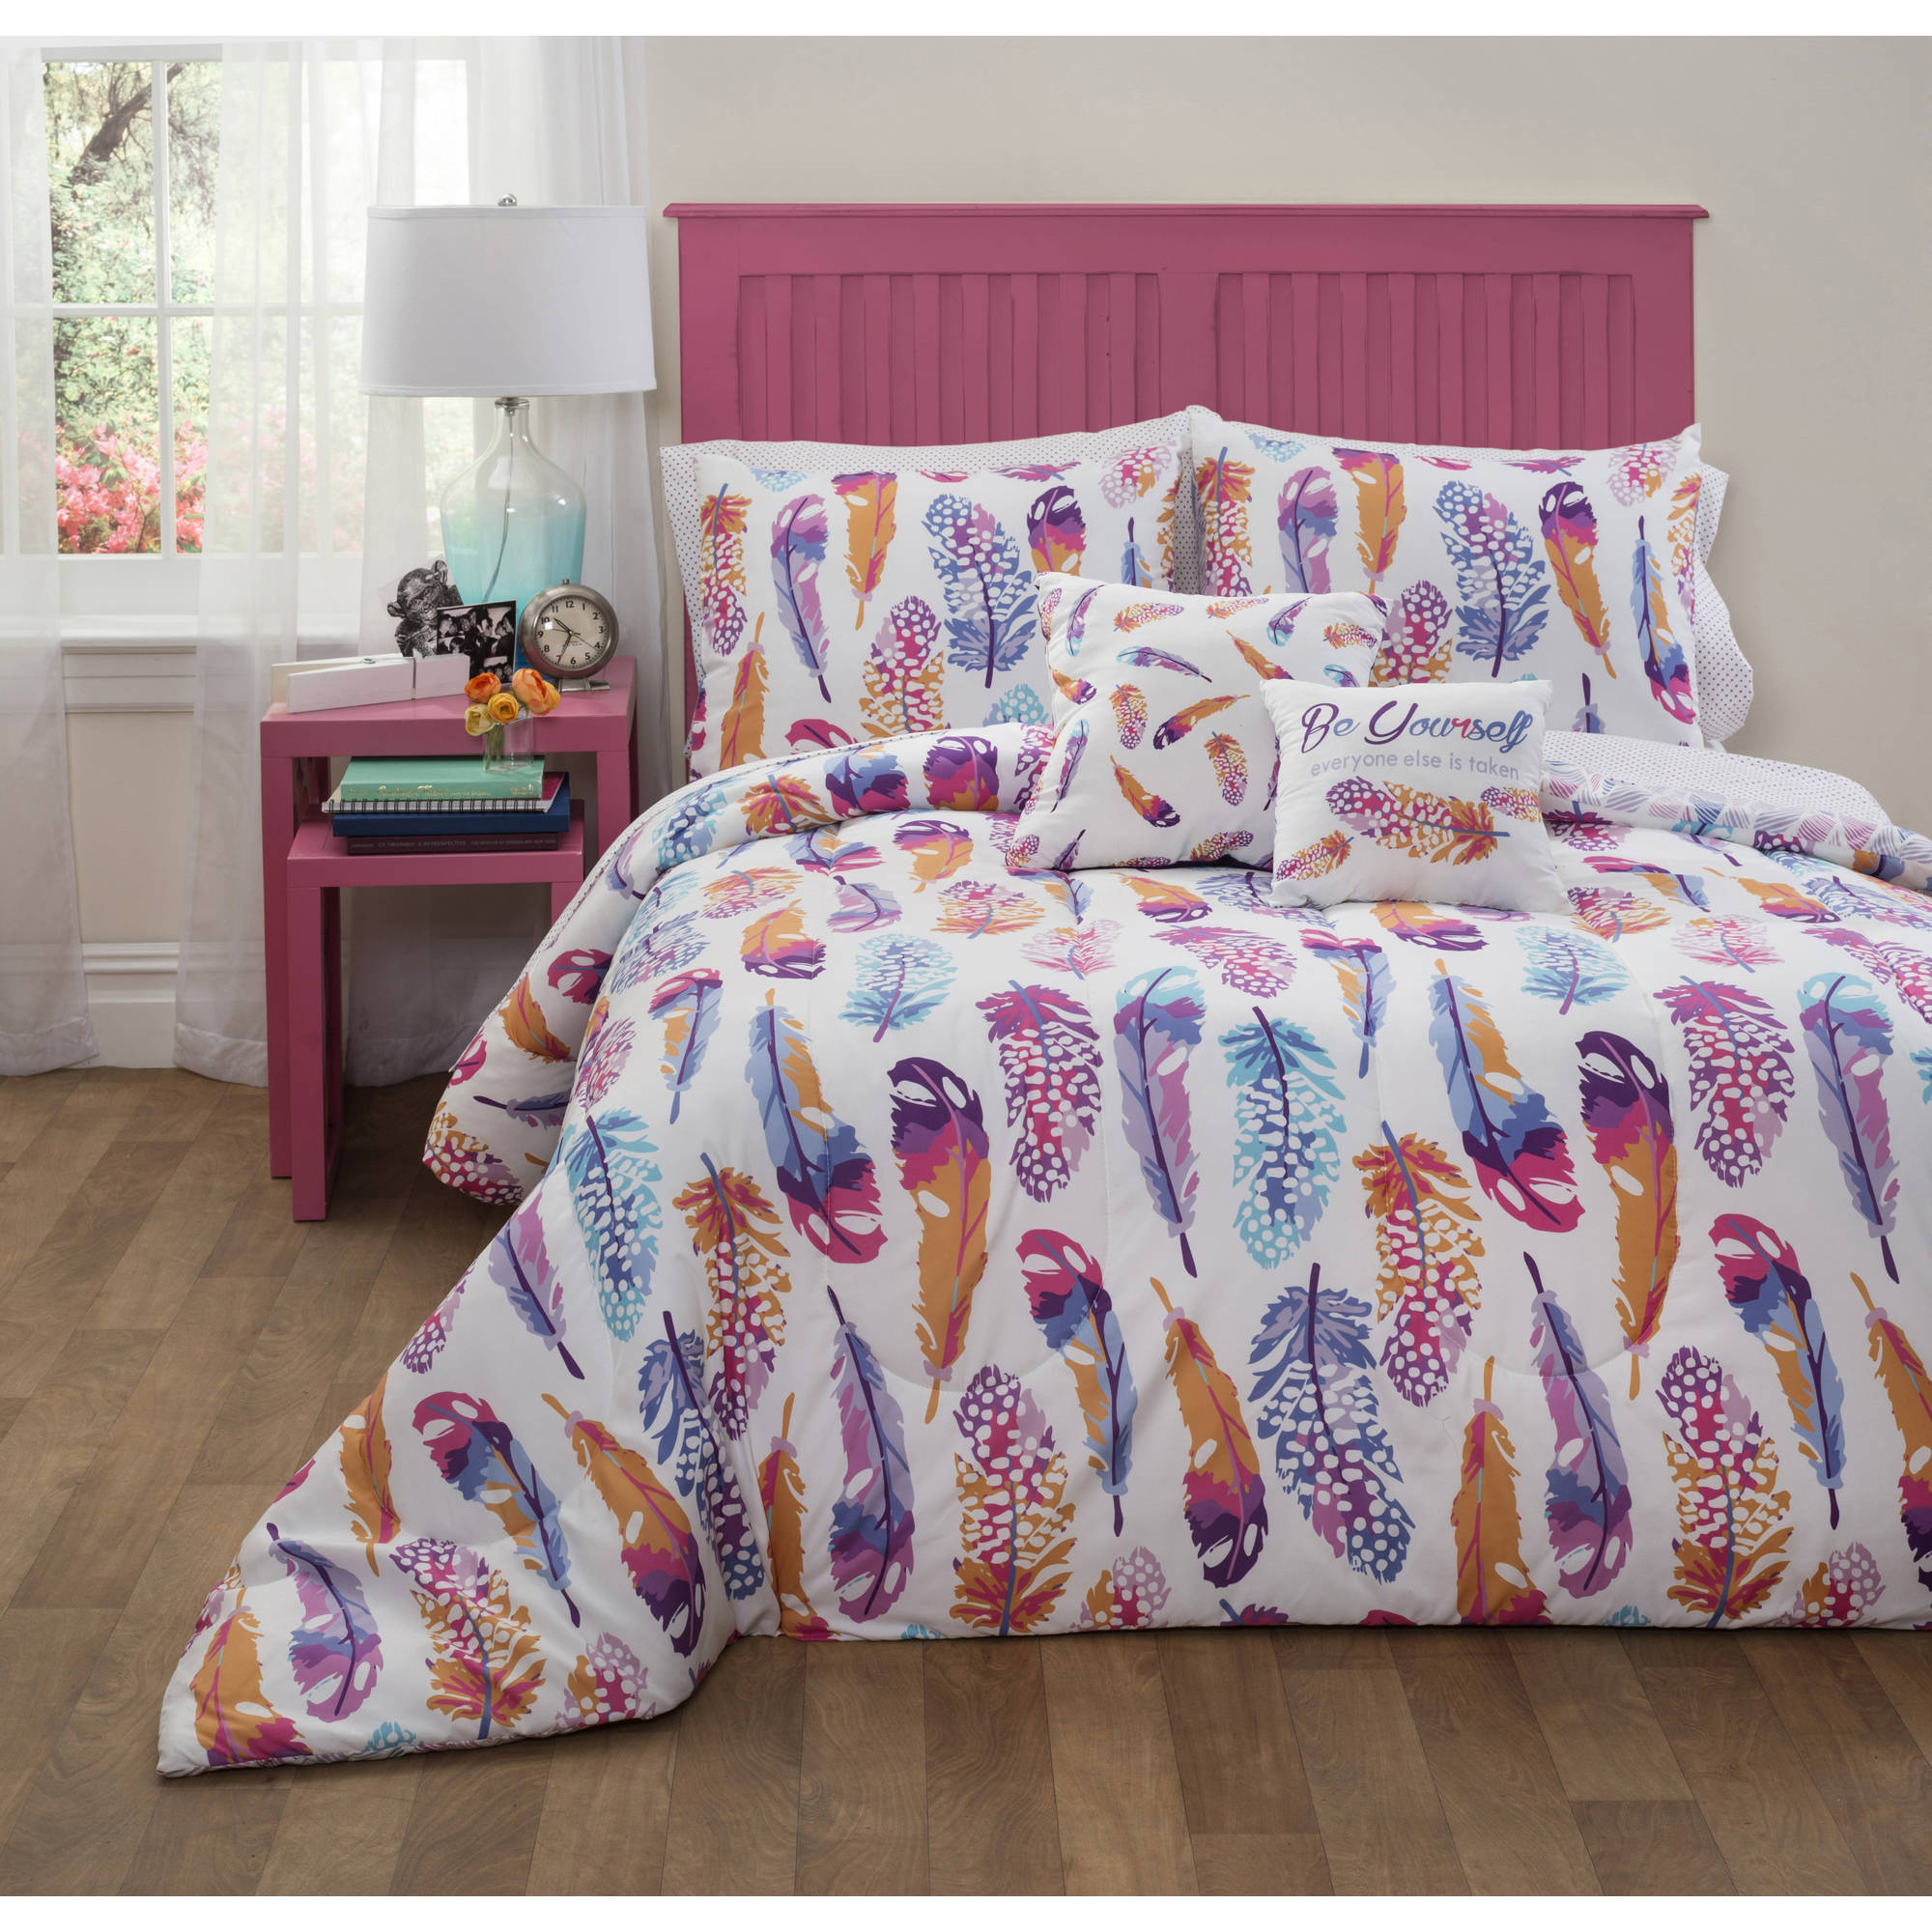 Formula Watercolor Feather Bed-in-a-Bag Bedding Set